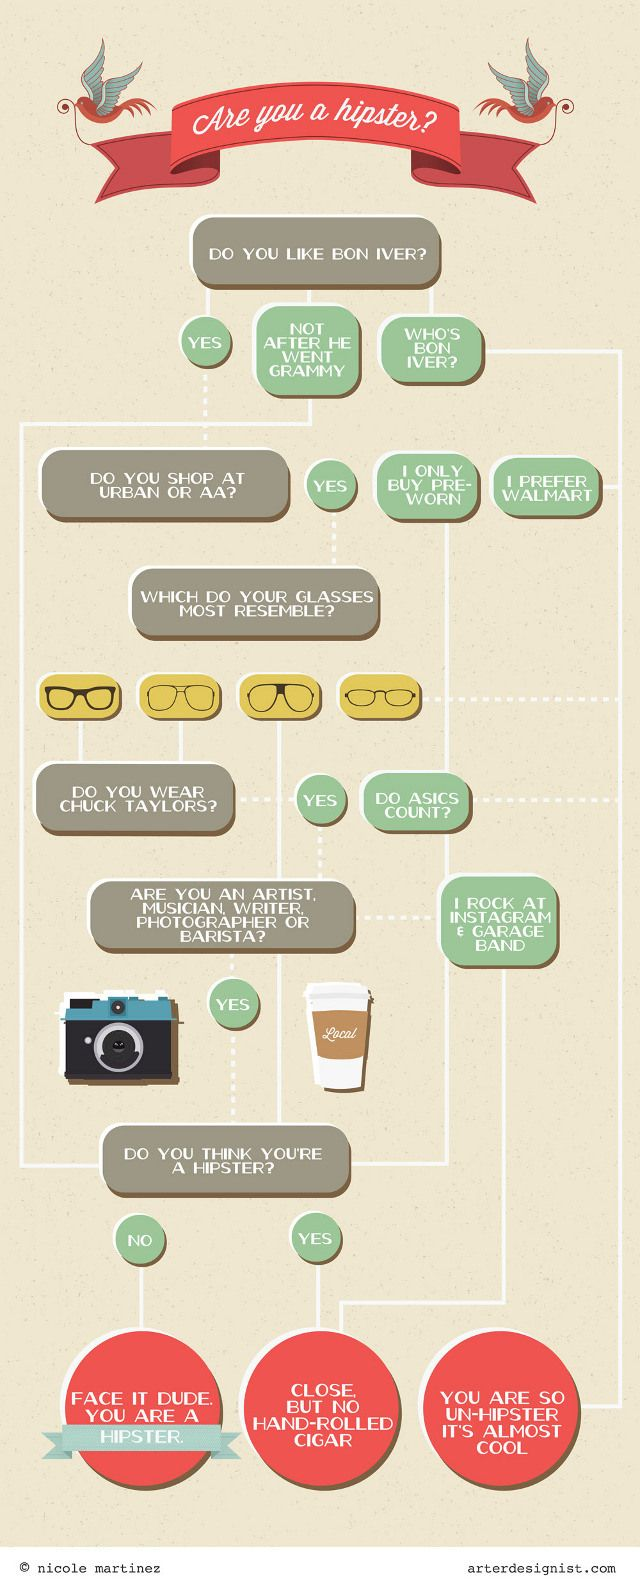 Are you a #hipster? – #Infographic by @arterdesignist